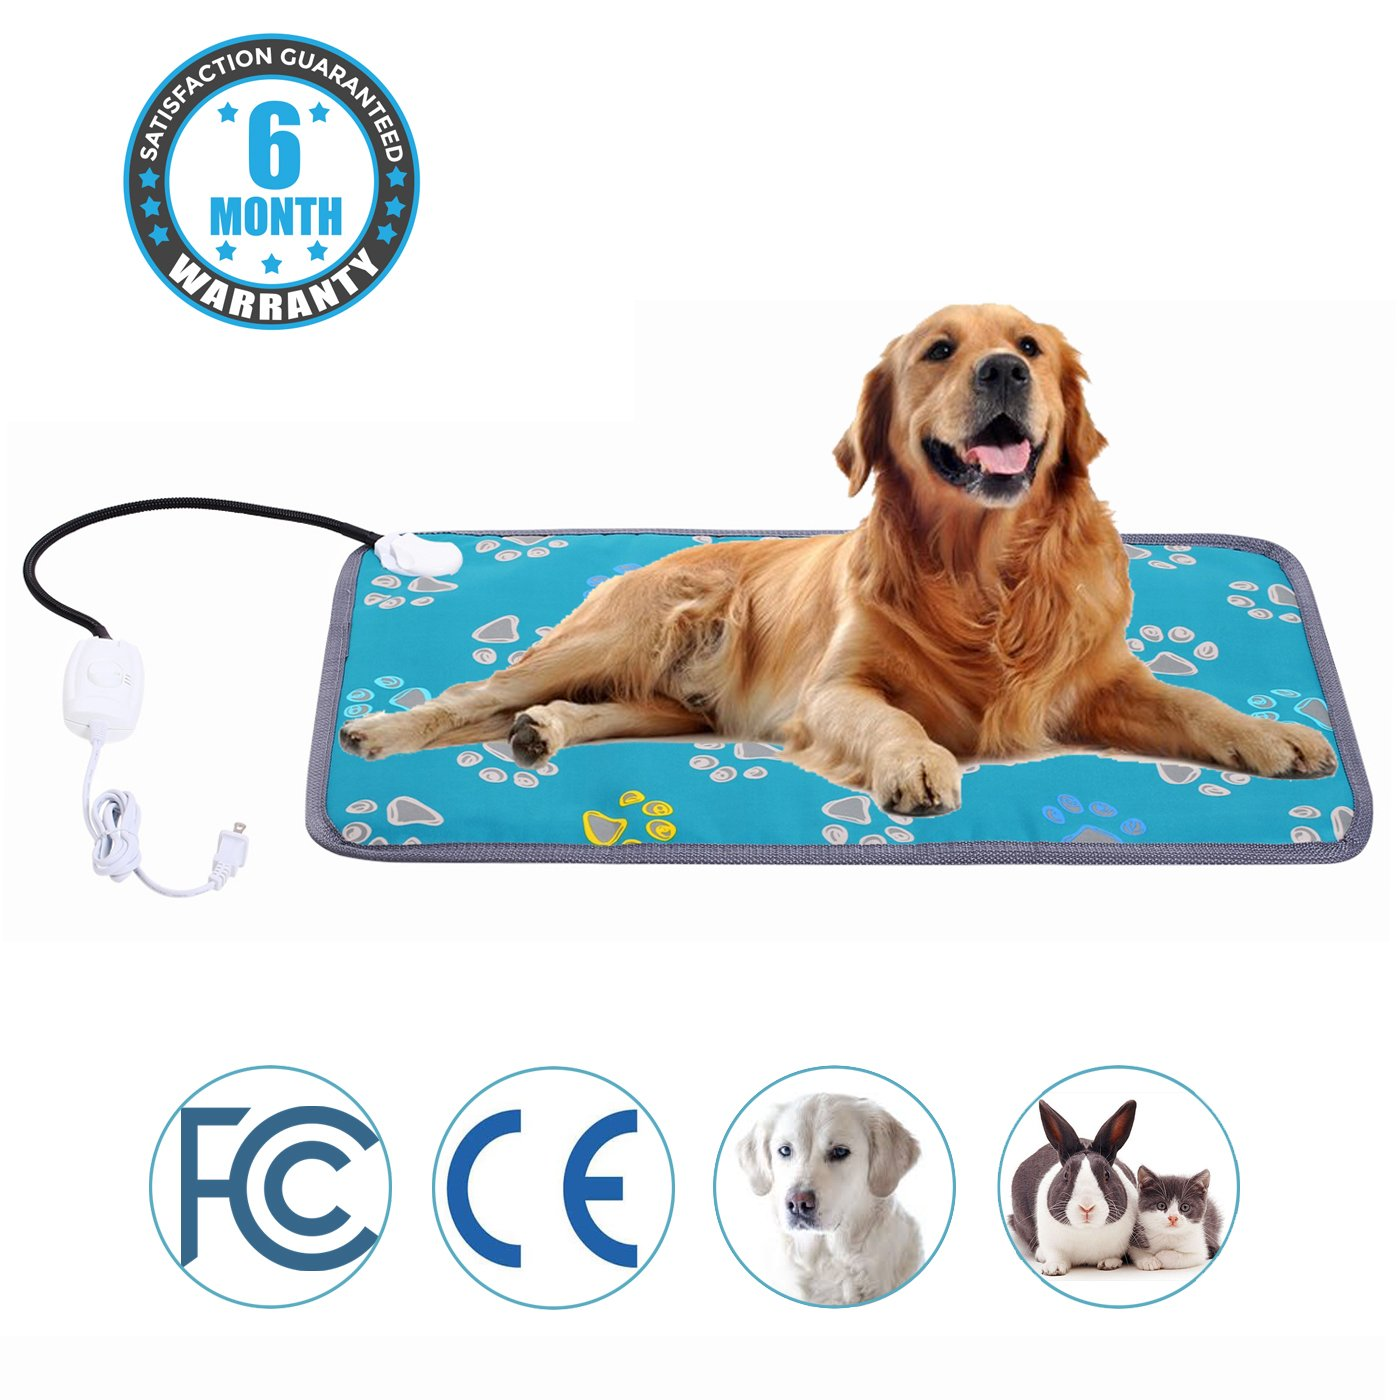 Mazort Pet Heating Pad Cats and Dogs Safety Electric Heated Pet Bed Warming Mat with 2 Adjustable Temperature Chew Resistant Cord 19.6'' x 27.5''